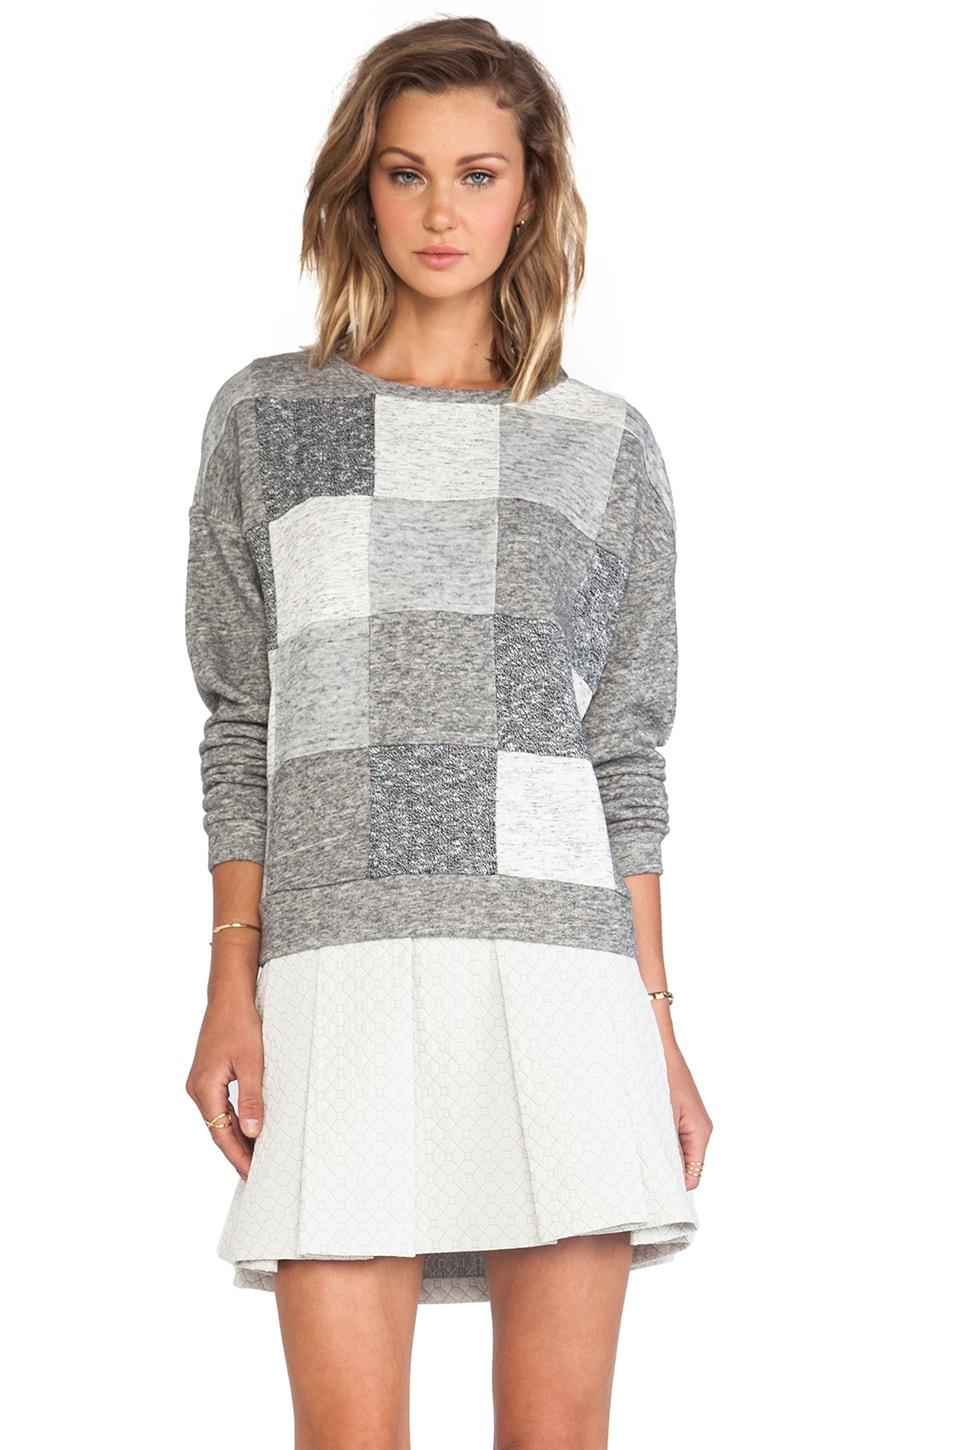 DEREK LAM 10 CROSBY Zip Back Sweatshirt in Grey Combo